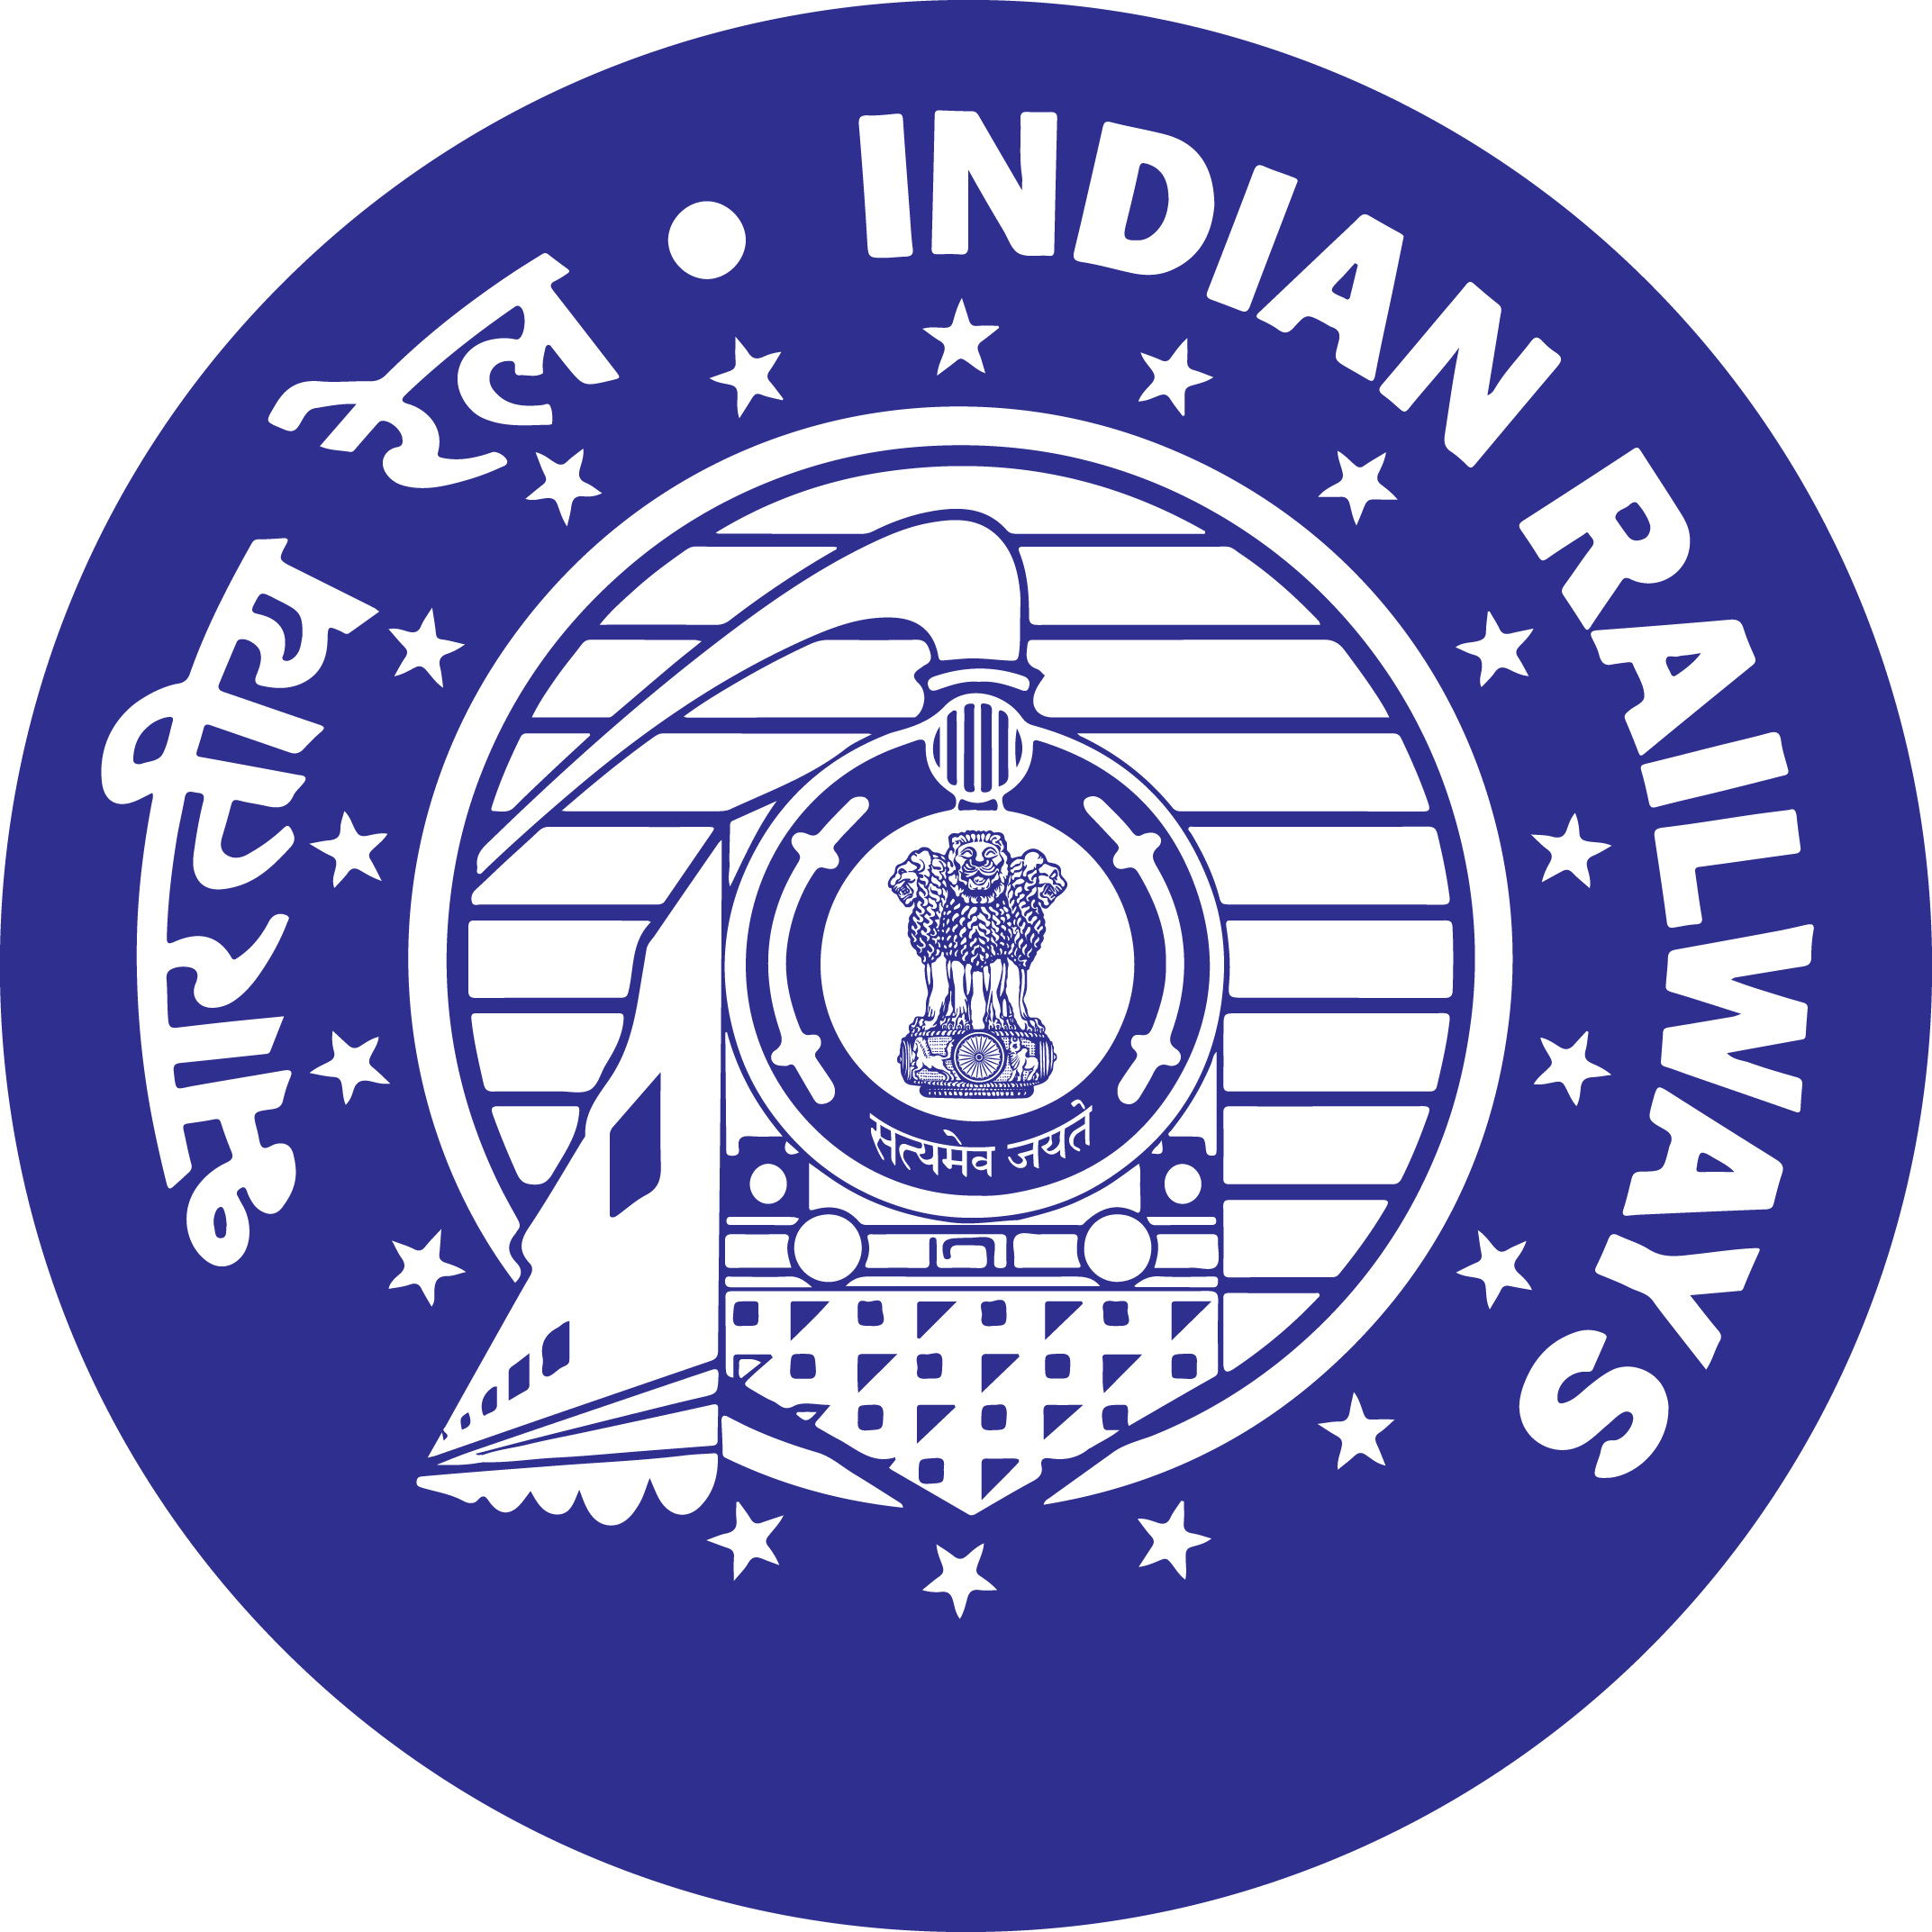 Indian Railway Client Image